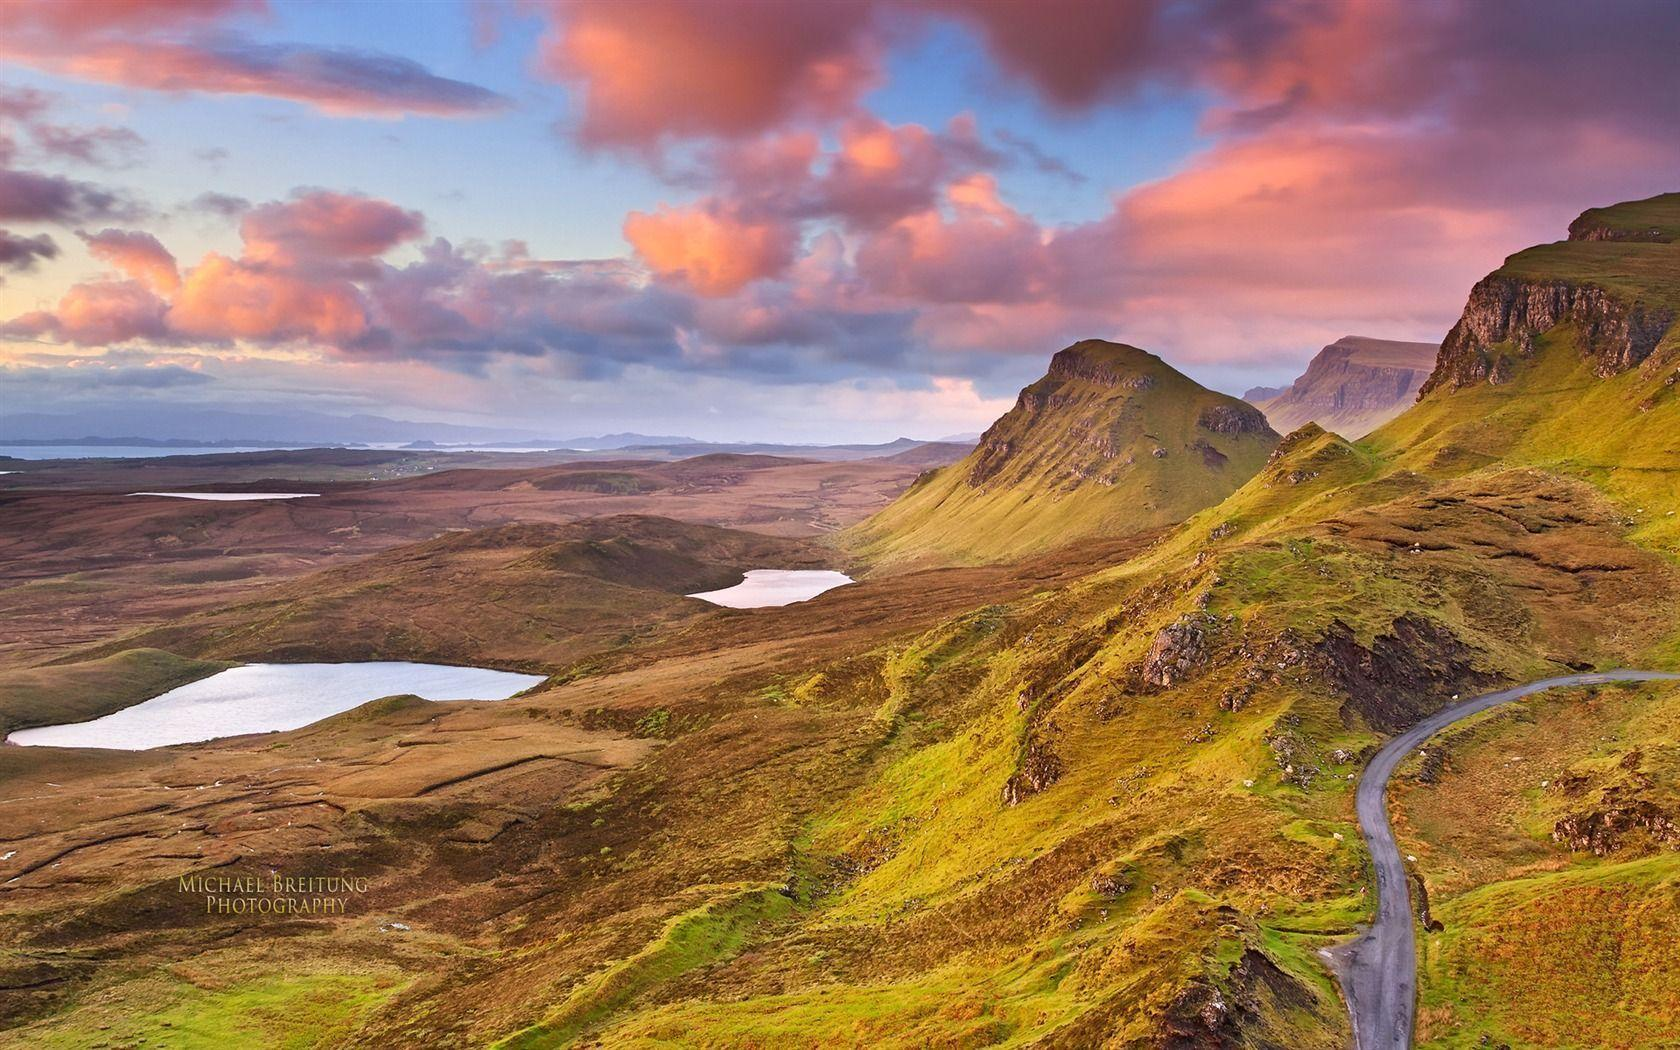 Skye Island, Scotland wallpaper – wallpaper free download